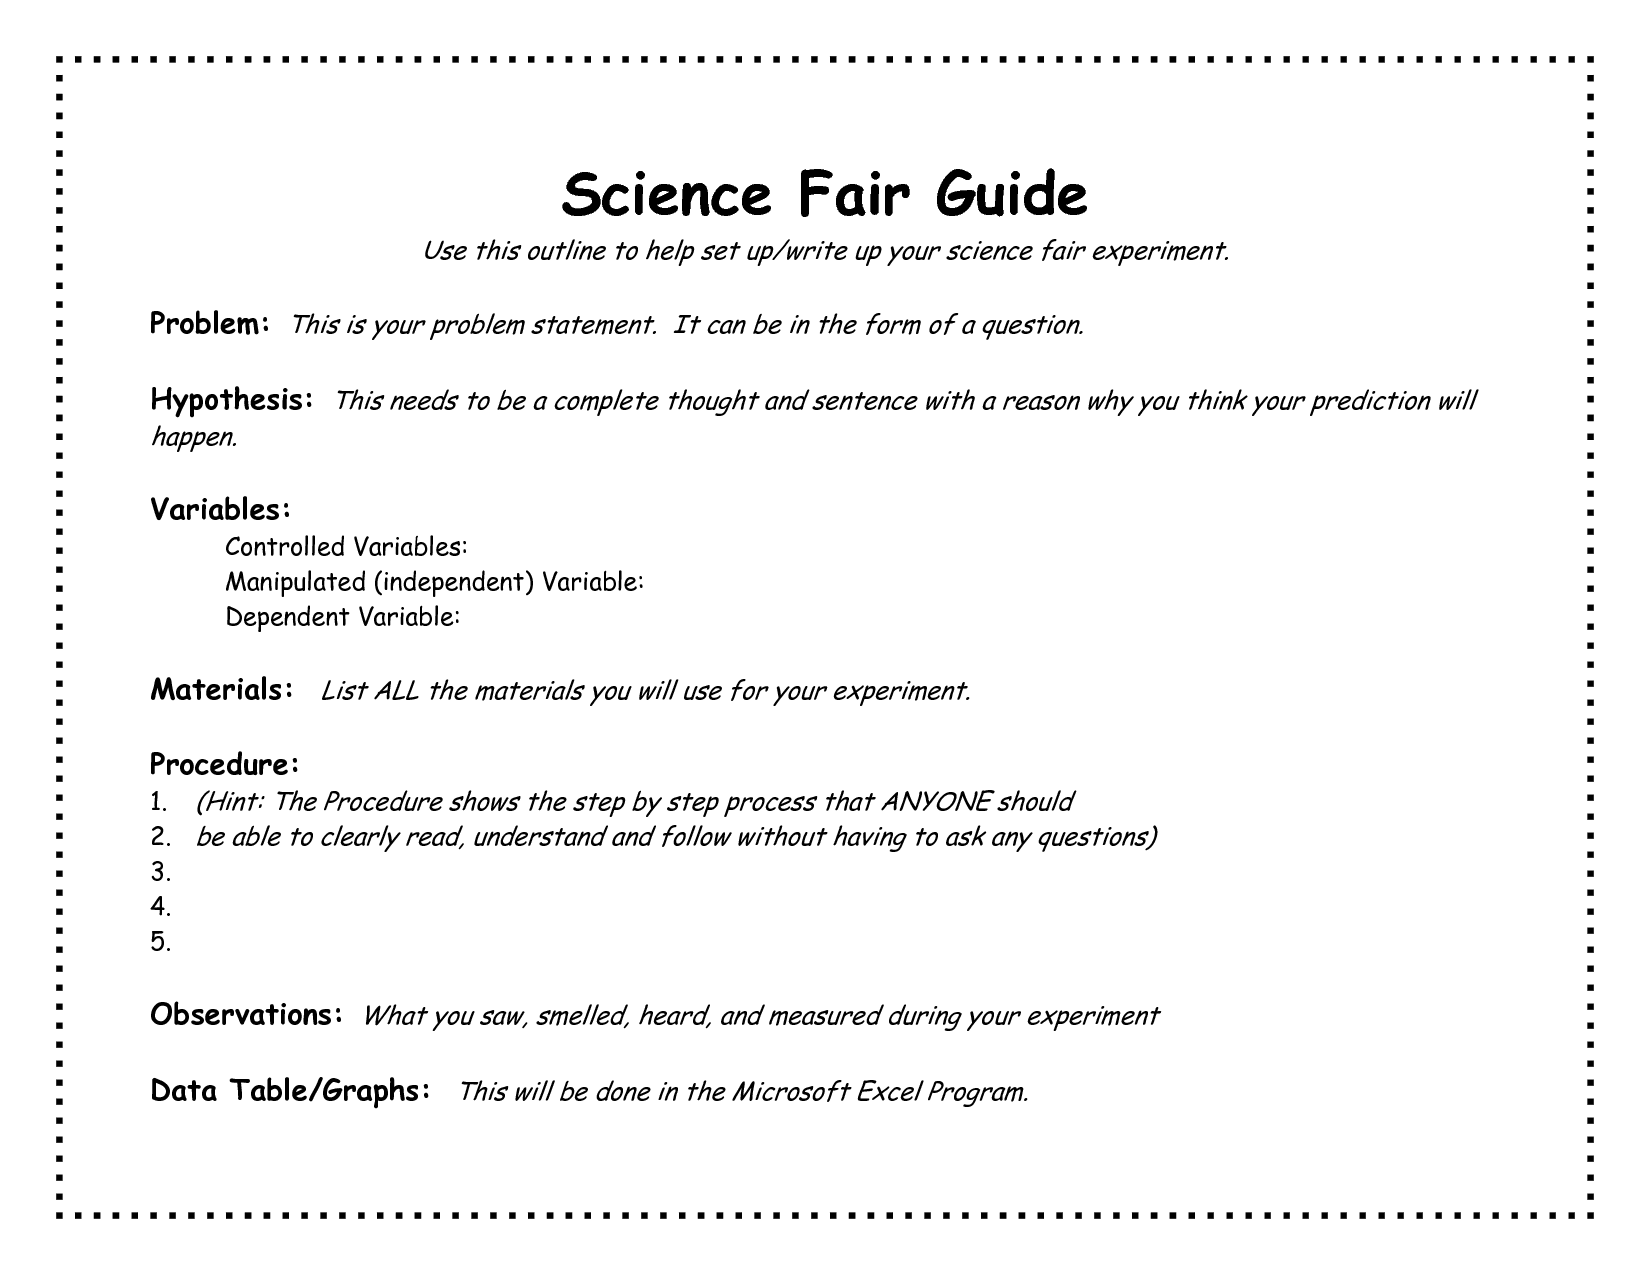 004 8th Grade Science Research Paper Outline Stunning Full